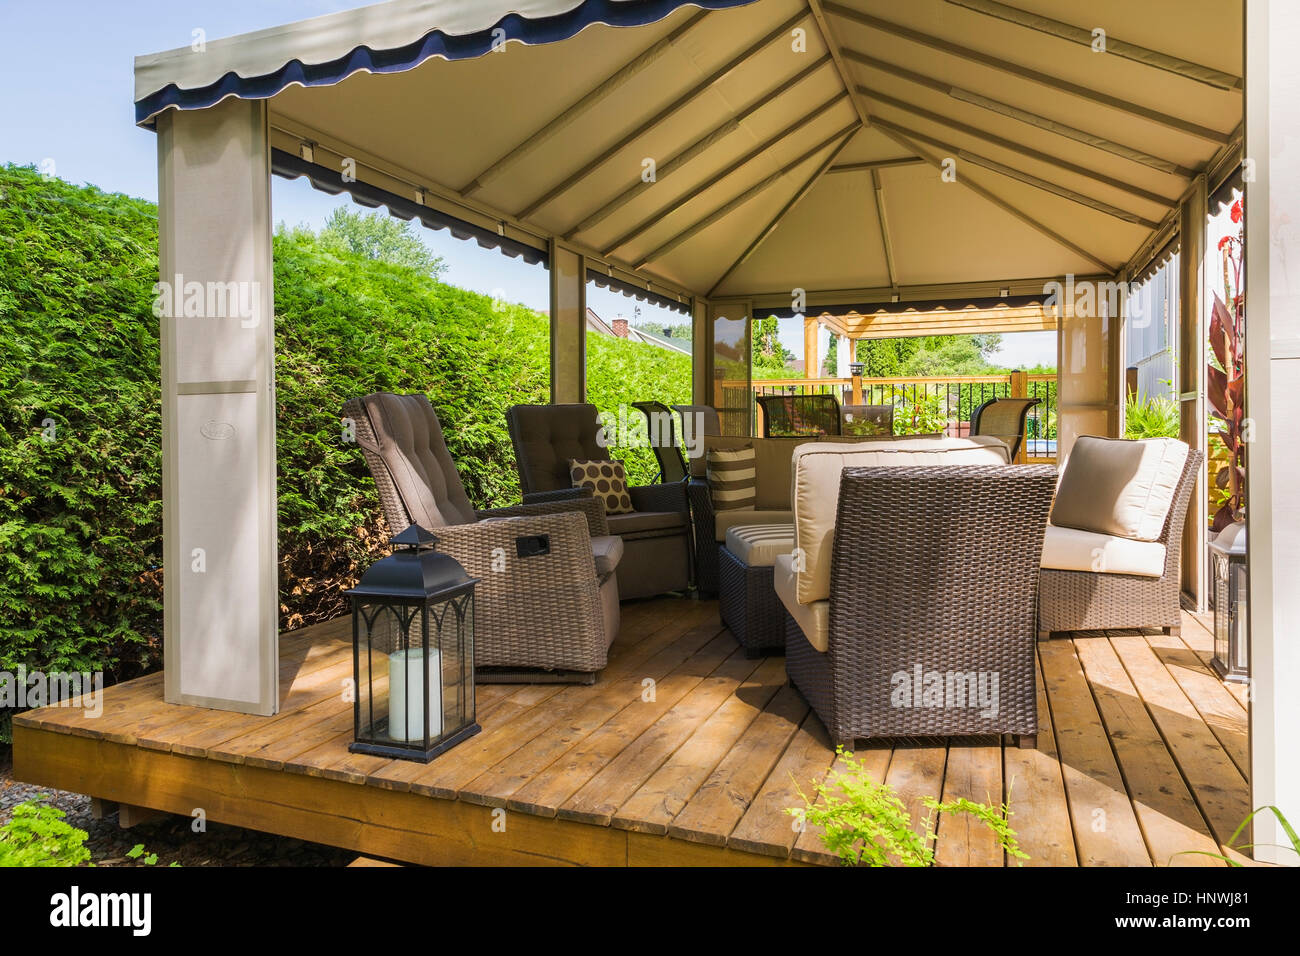 Gazebo on wooden deck furnished with wicker furniture, Quebec, Canada - Stock Image